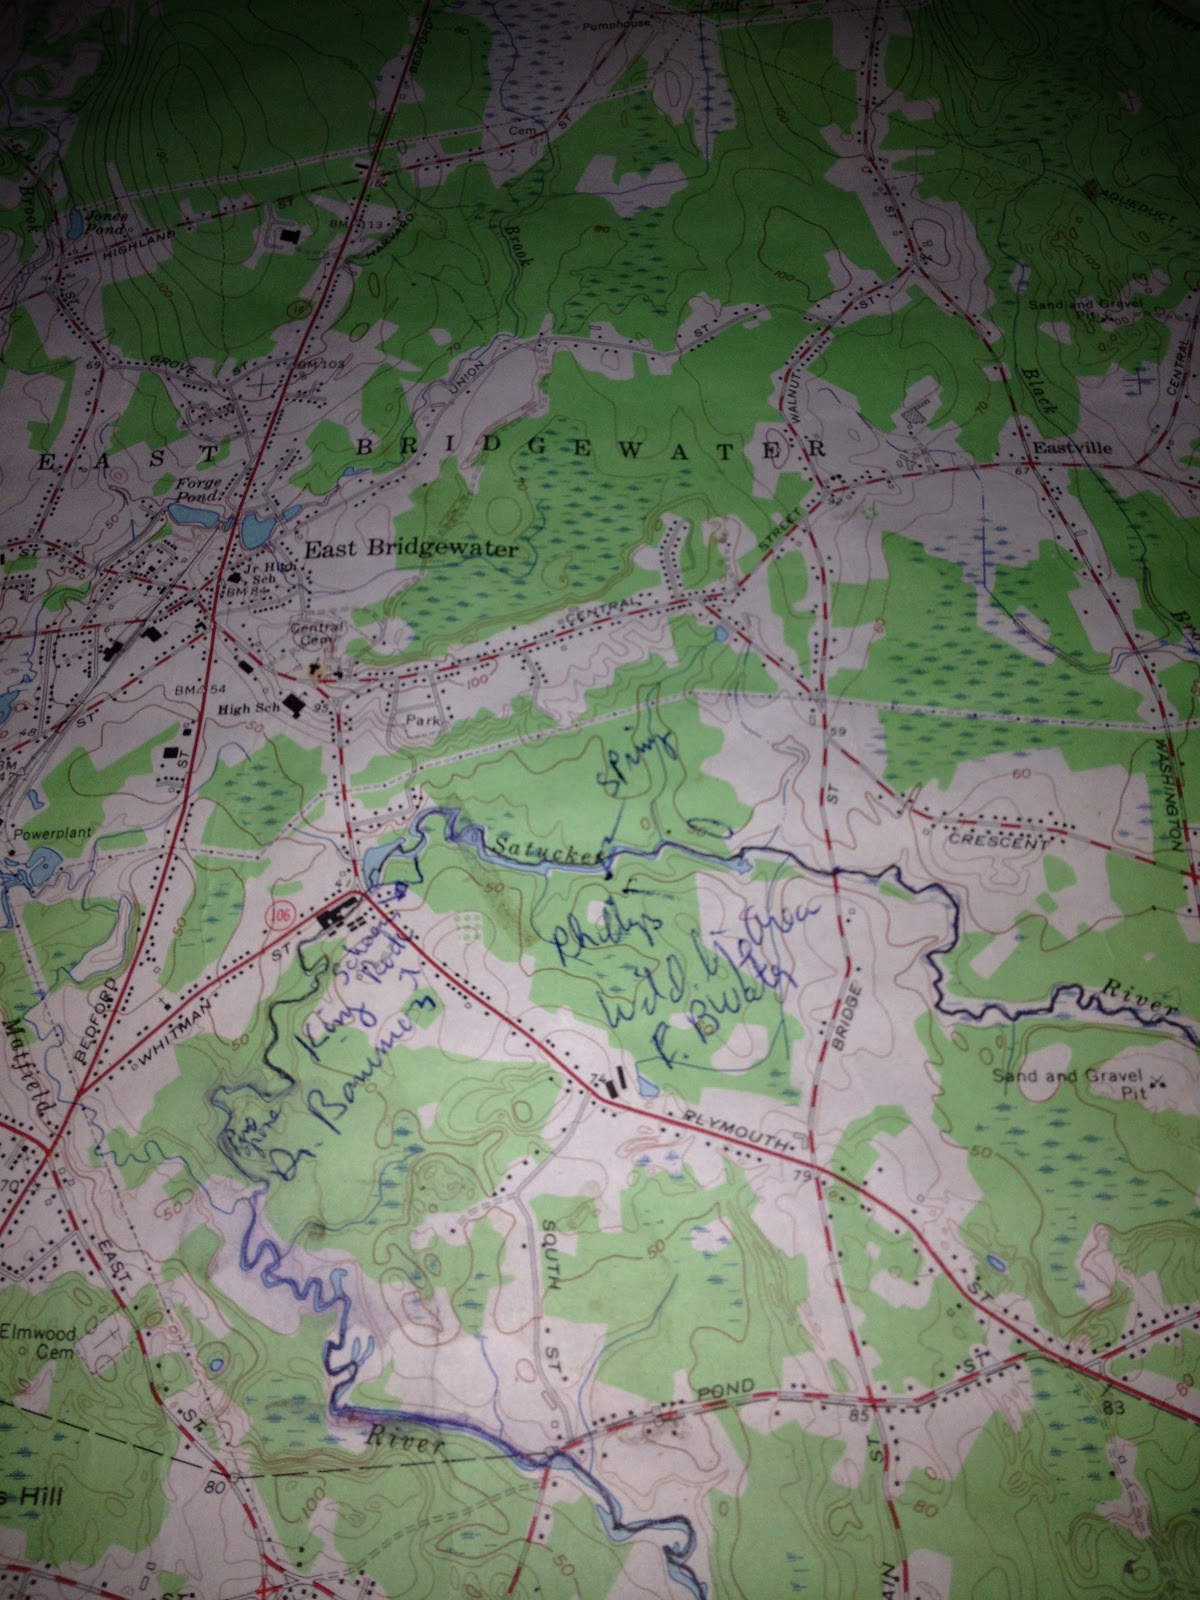 introduction i have the old topographic maps from troop 66 scoutmaster thomas clark who researched and initiated this effort to rediscover the wampanoag